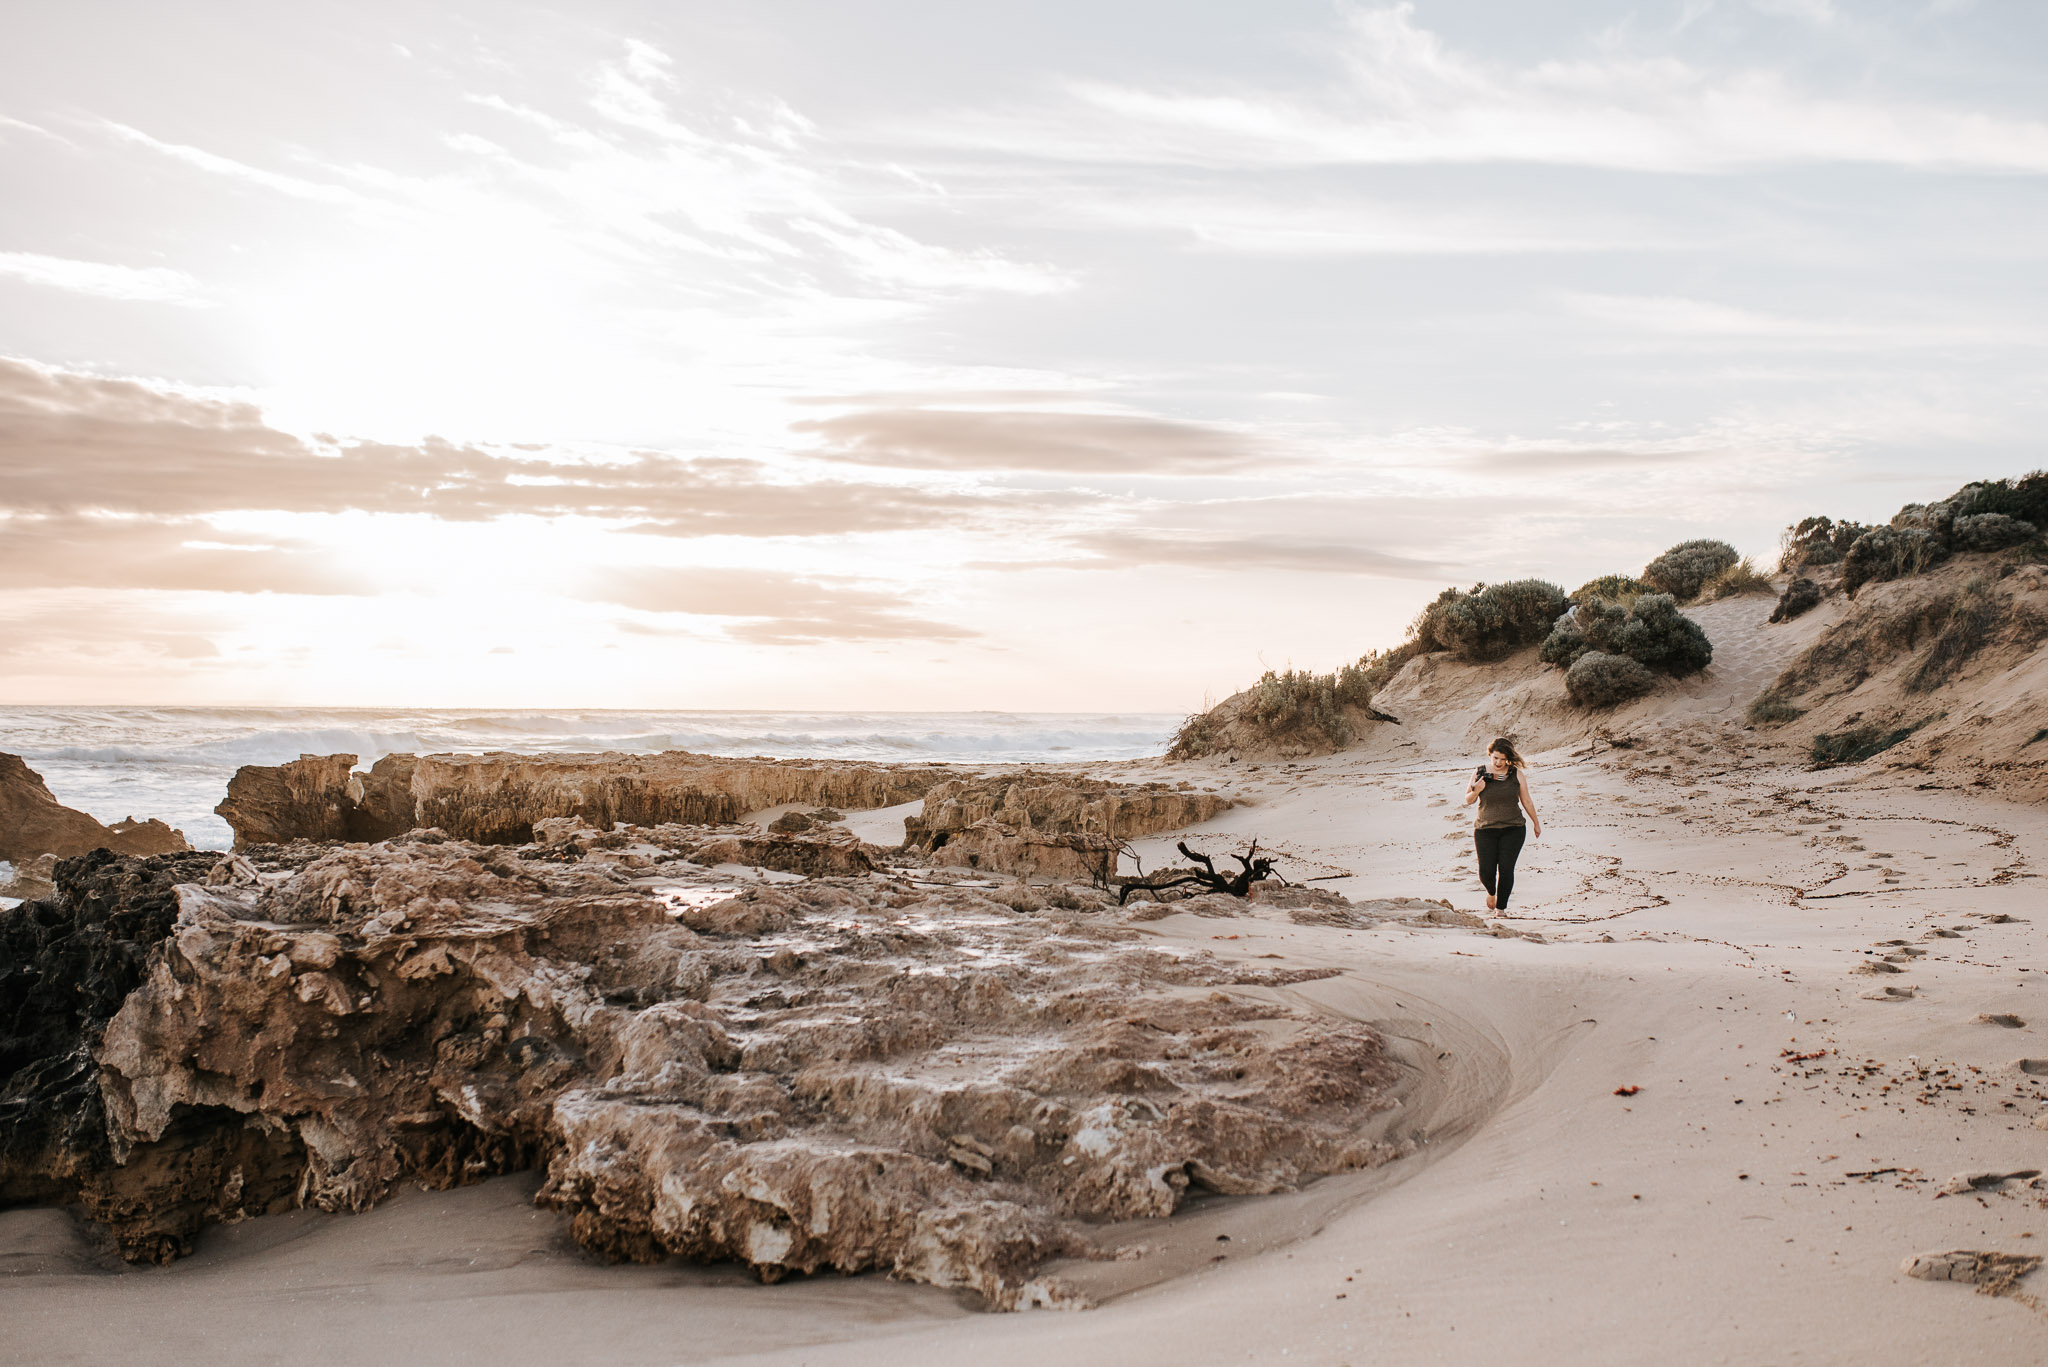 Jess Worrall Photography is a melbourne based personal branding photographer